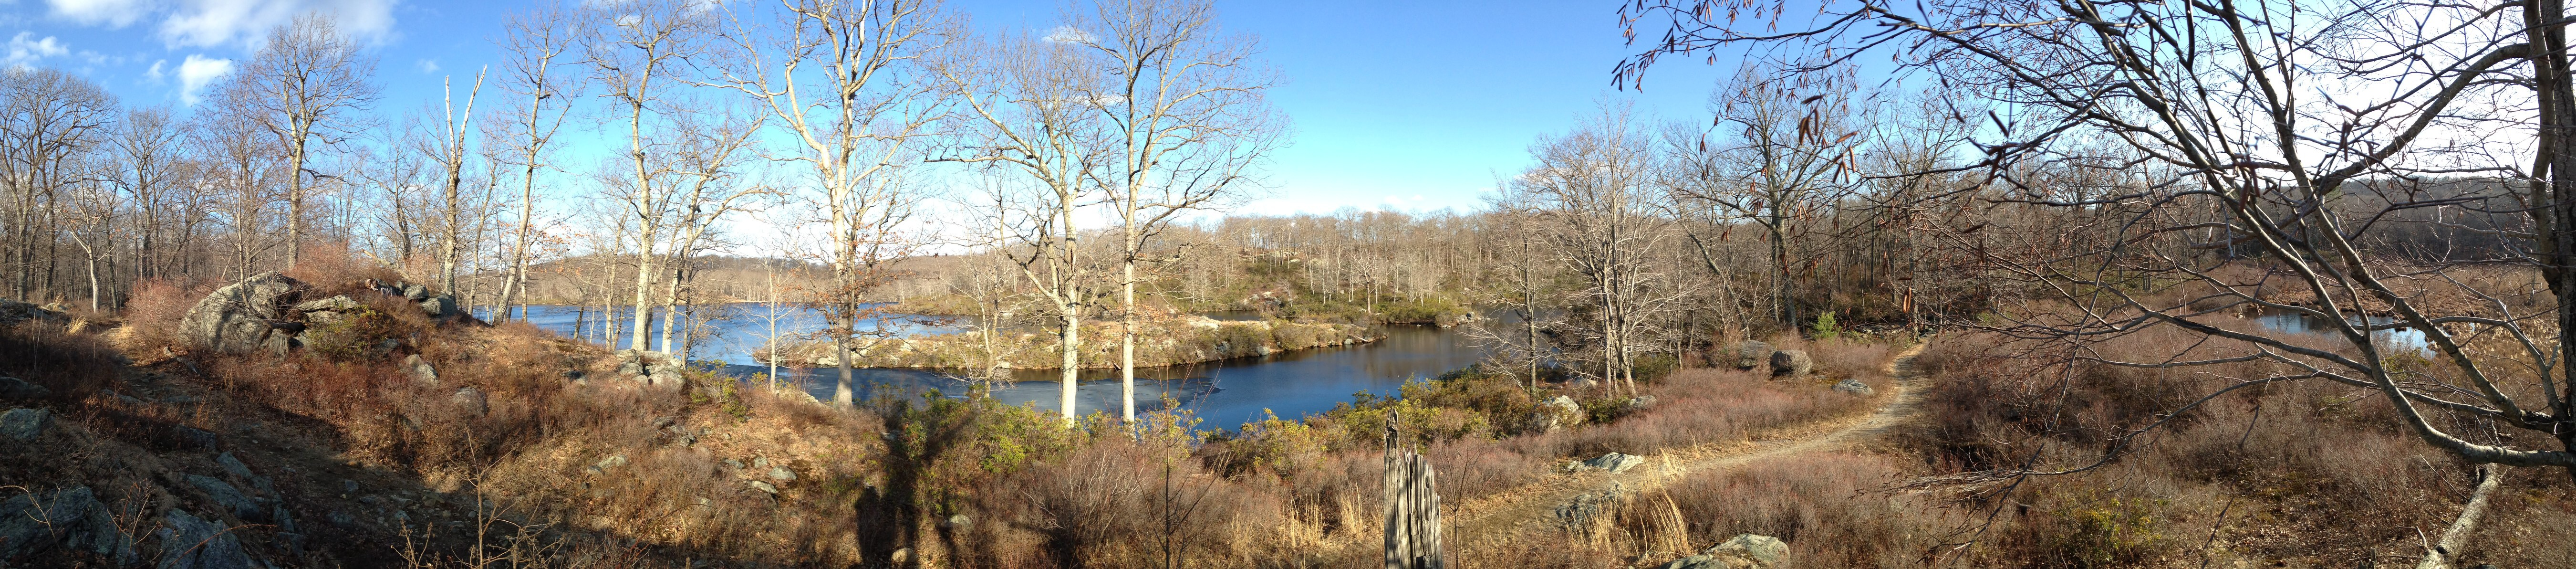 Lake Skenonto and swamp panorama